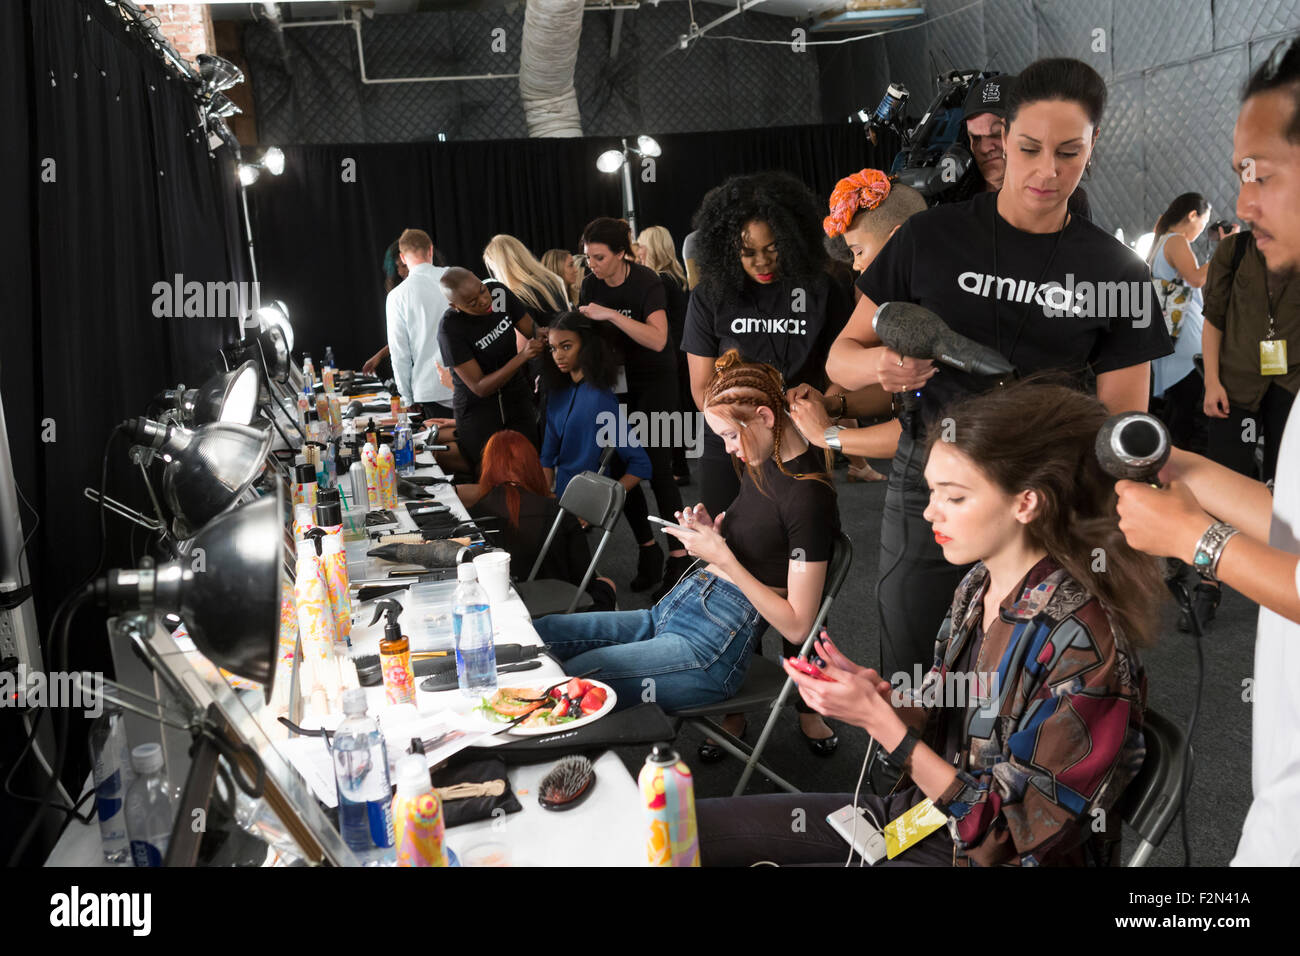 New York, NY - September 10, 2015: Models prepare backstage for the Desigual fashion show - Stock Image